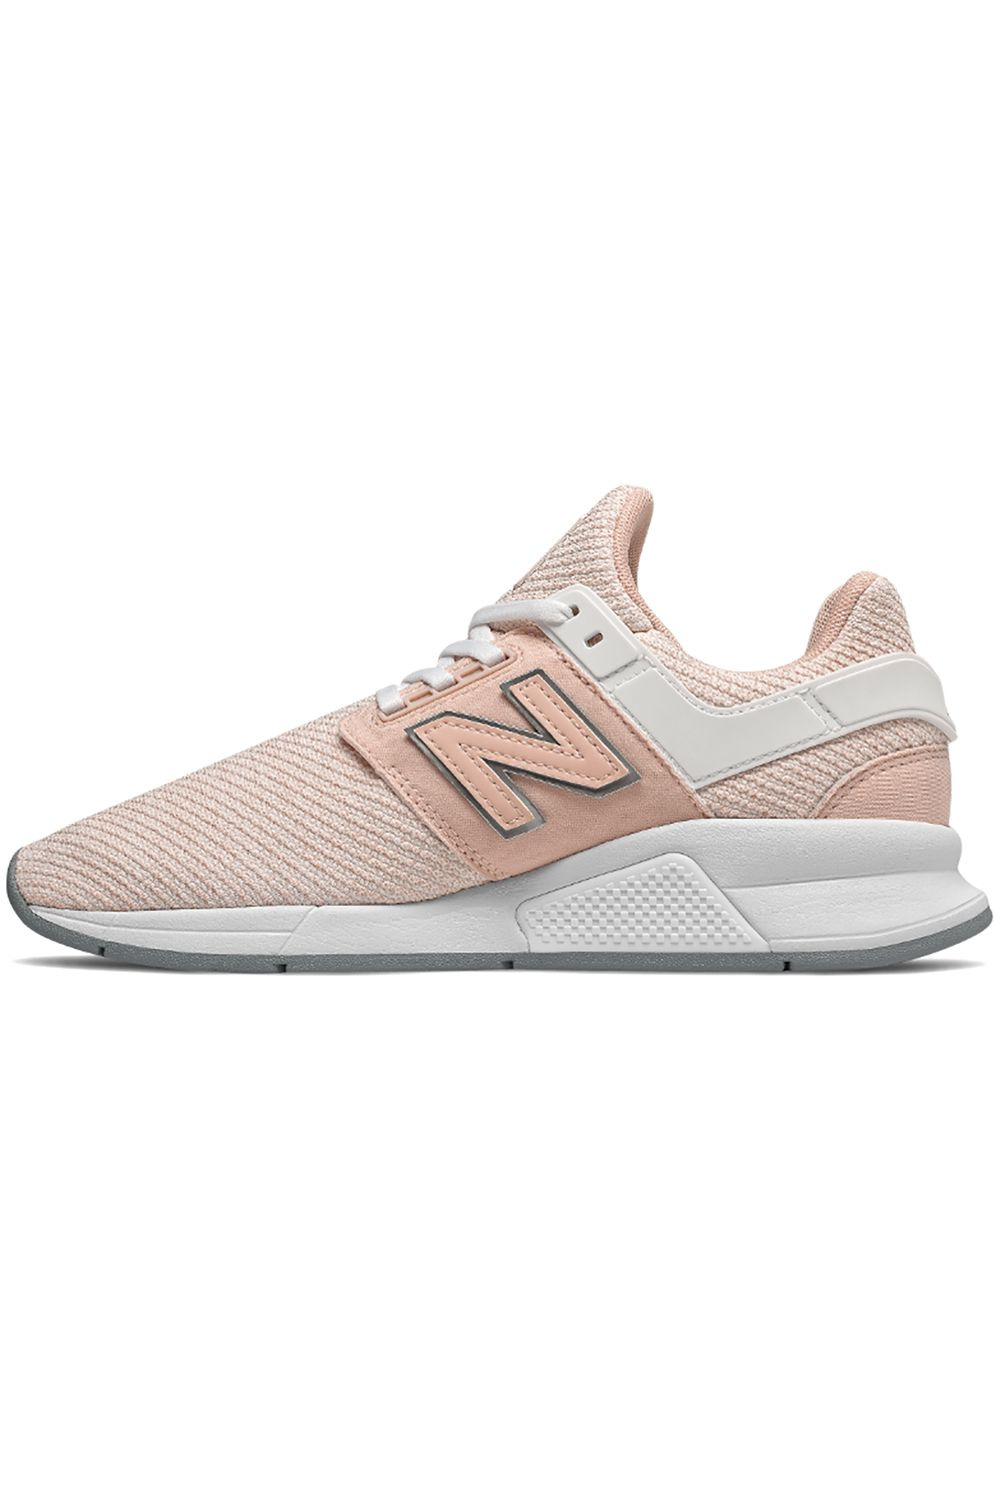 Tenis New Balance ES247 Oyster Pink